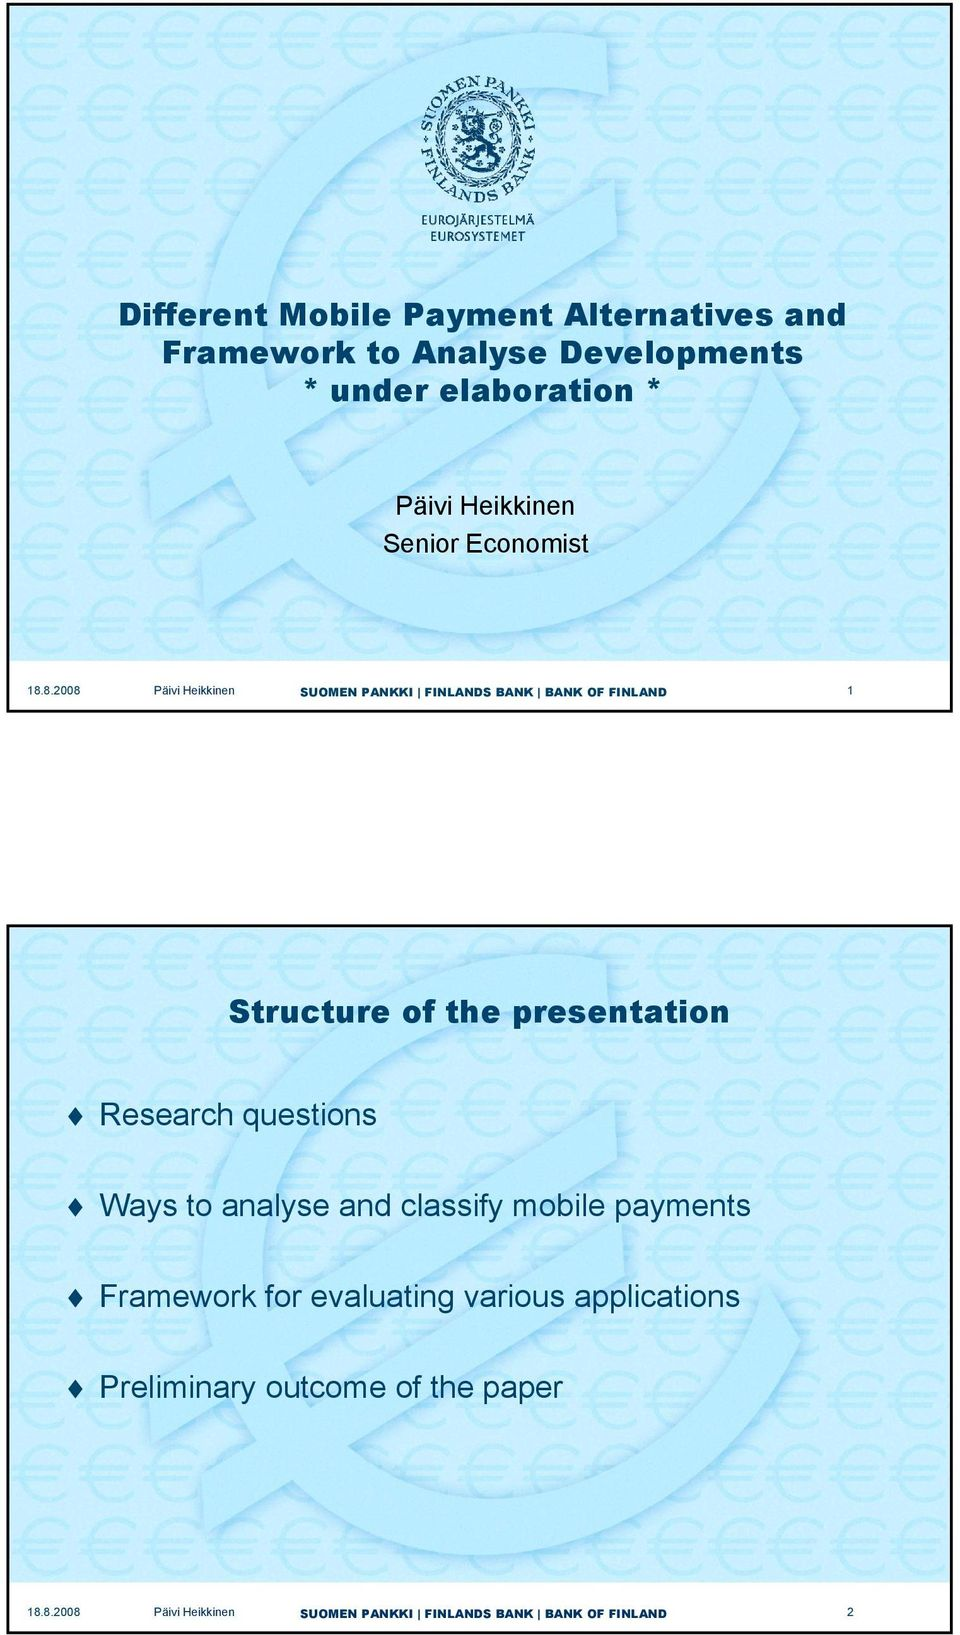 8.2008 Päivi Heikkinen 1 Structure of the presentation Research questions Ways to